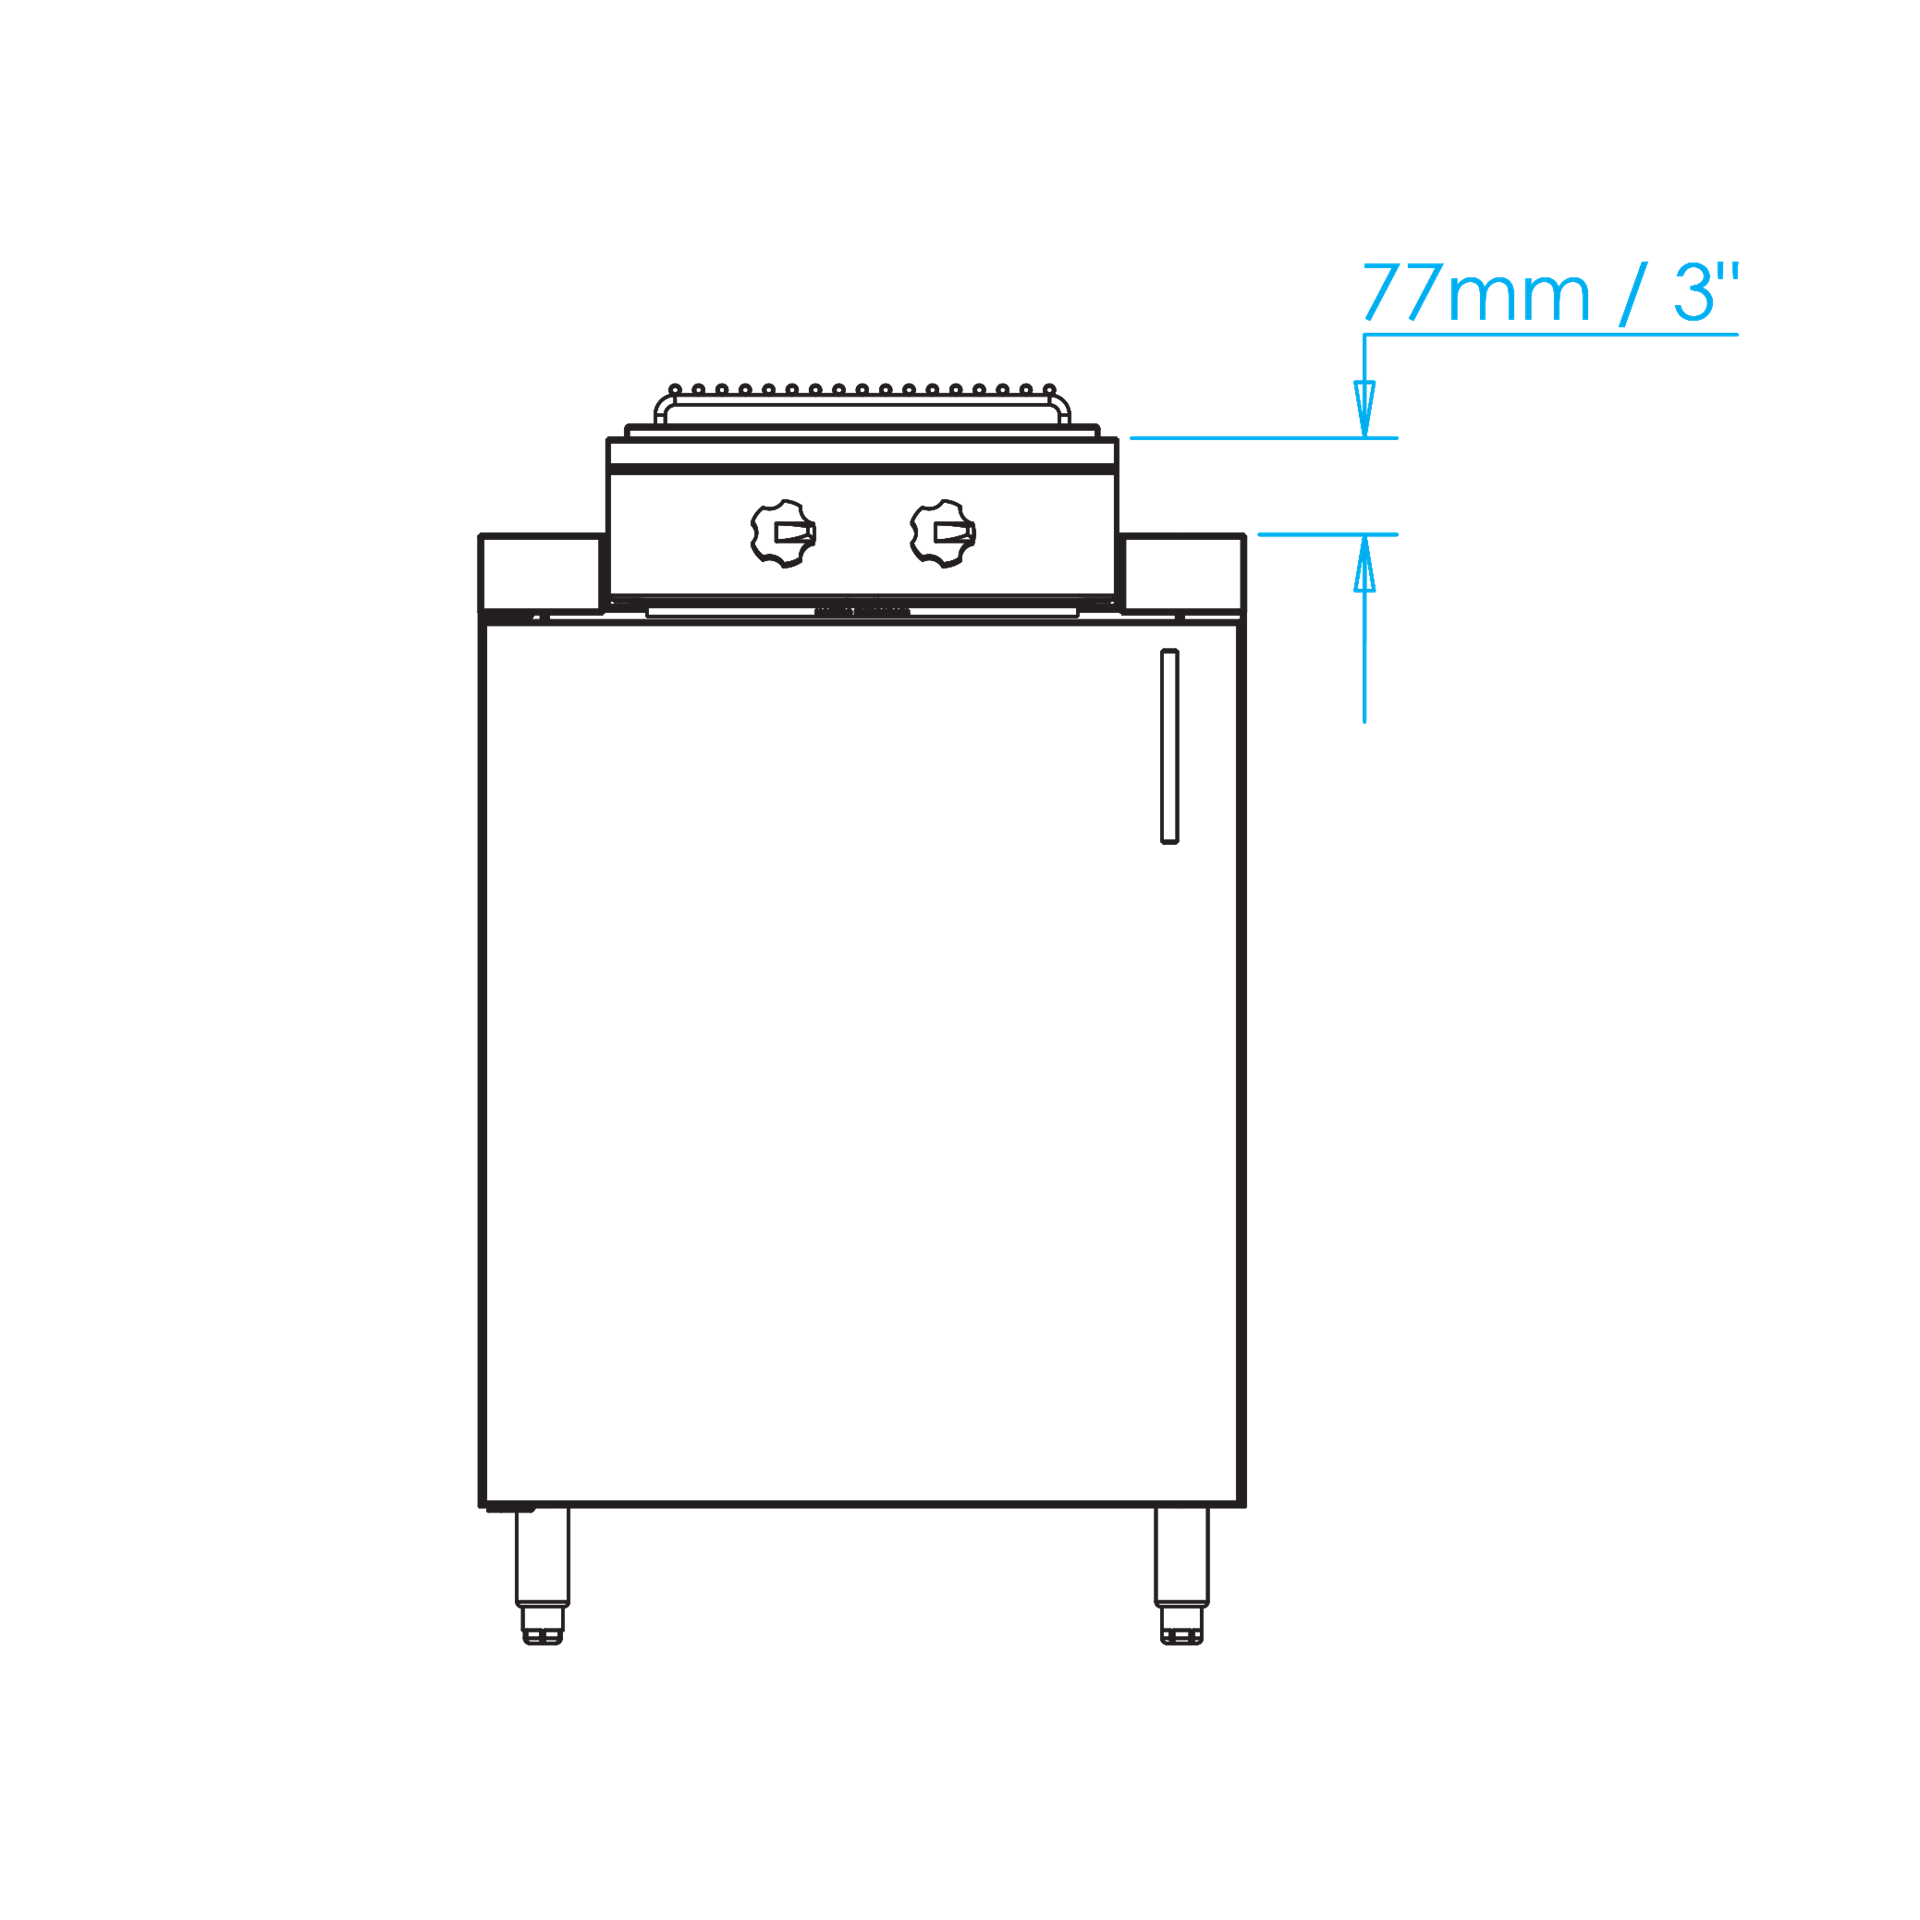 Built-In Double Cooktop Dimensions Image